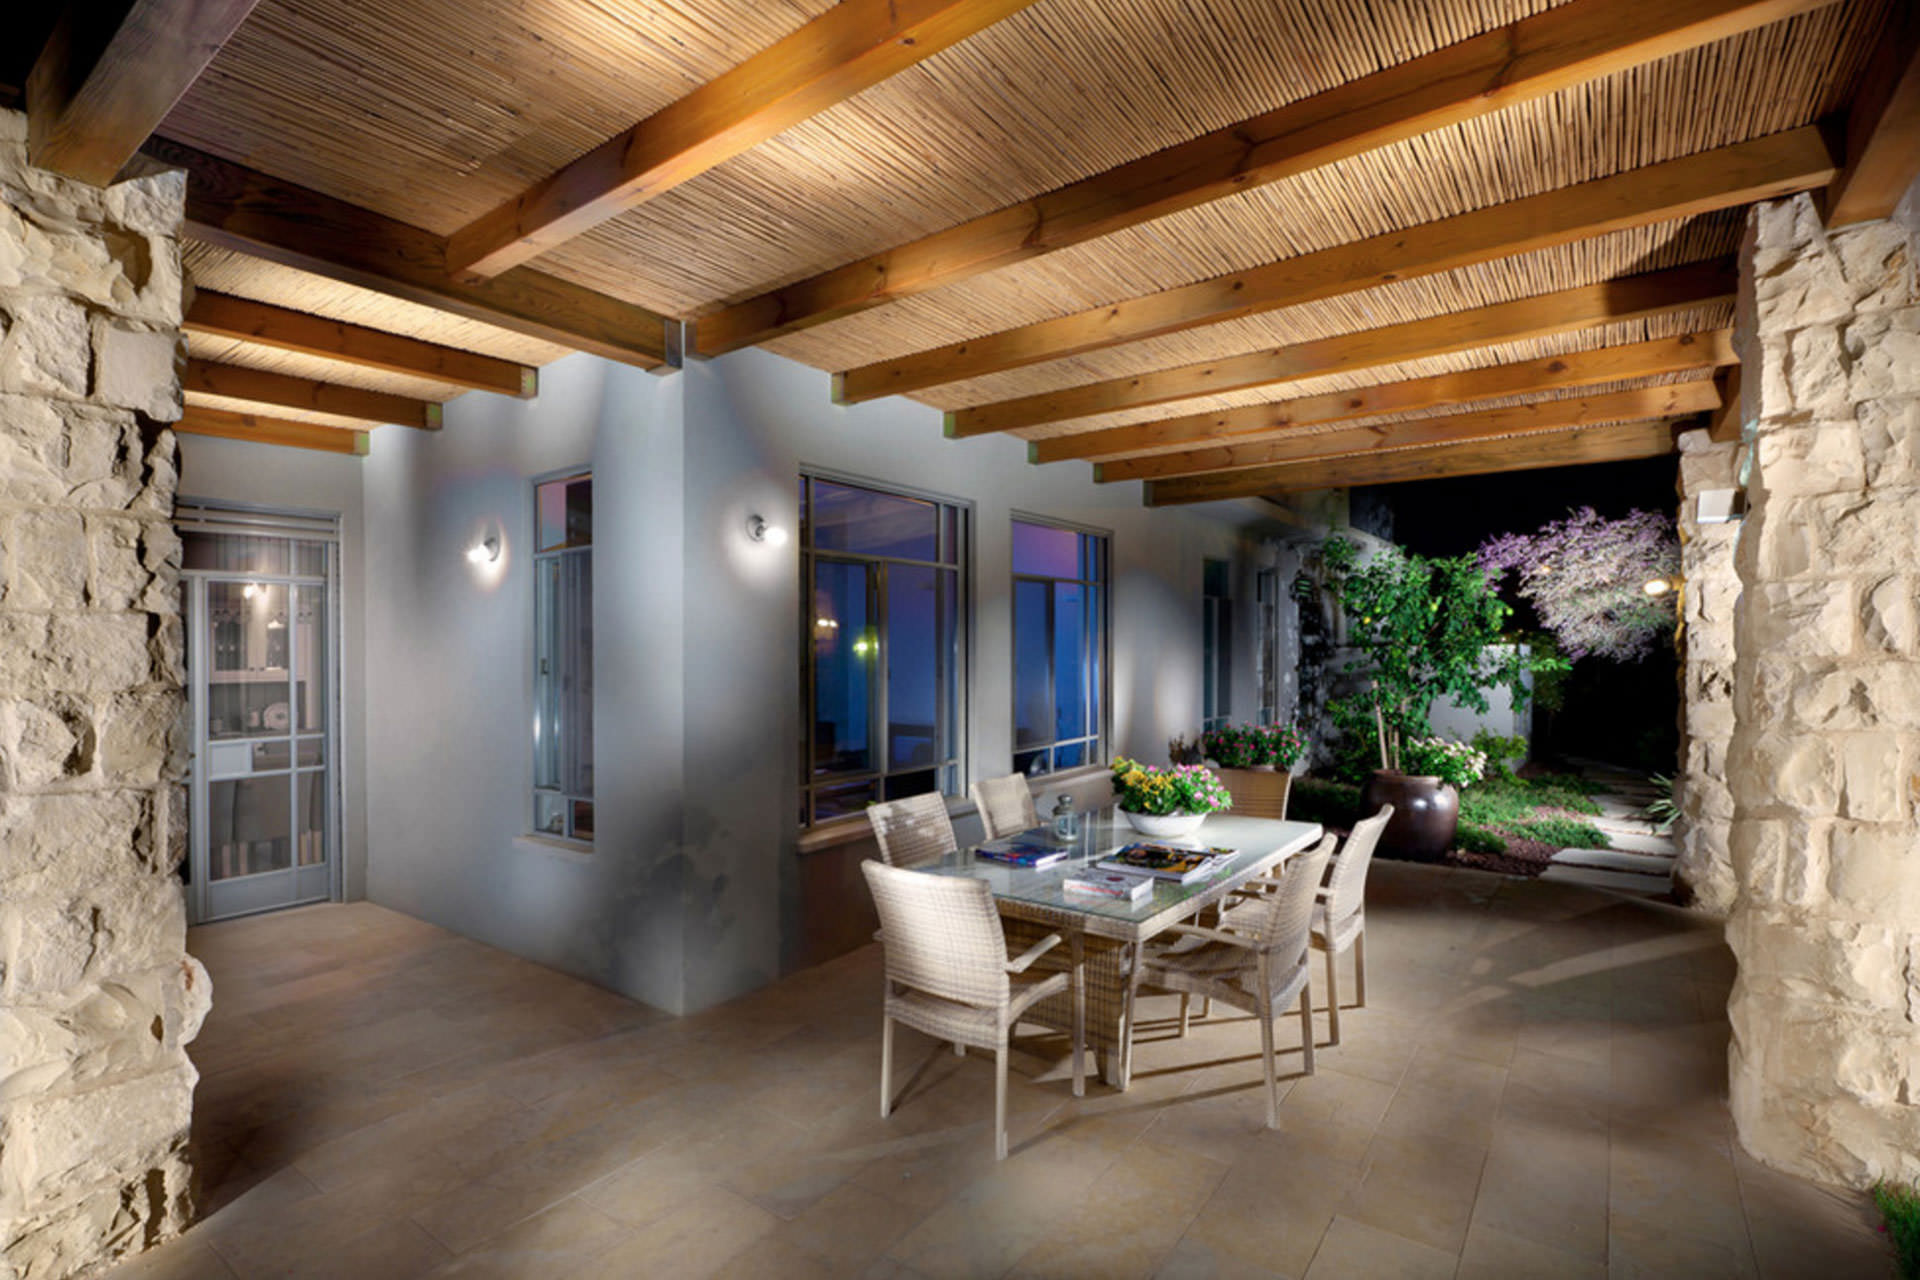 Pergola Shade: Pratical Solutions for Every Outdoor Space on Canvas Sun Shade Pergola id=39580